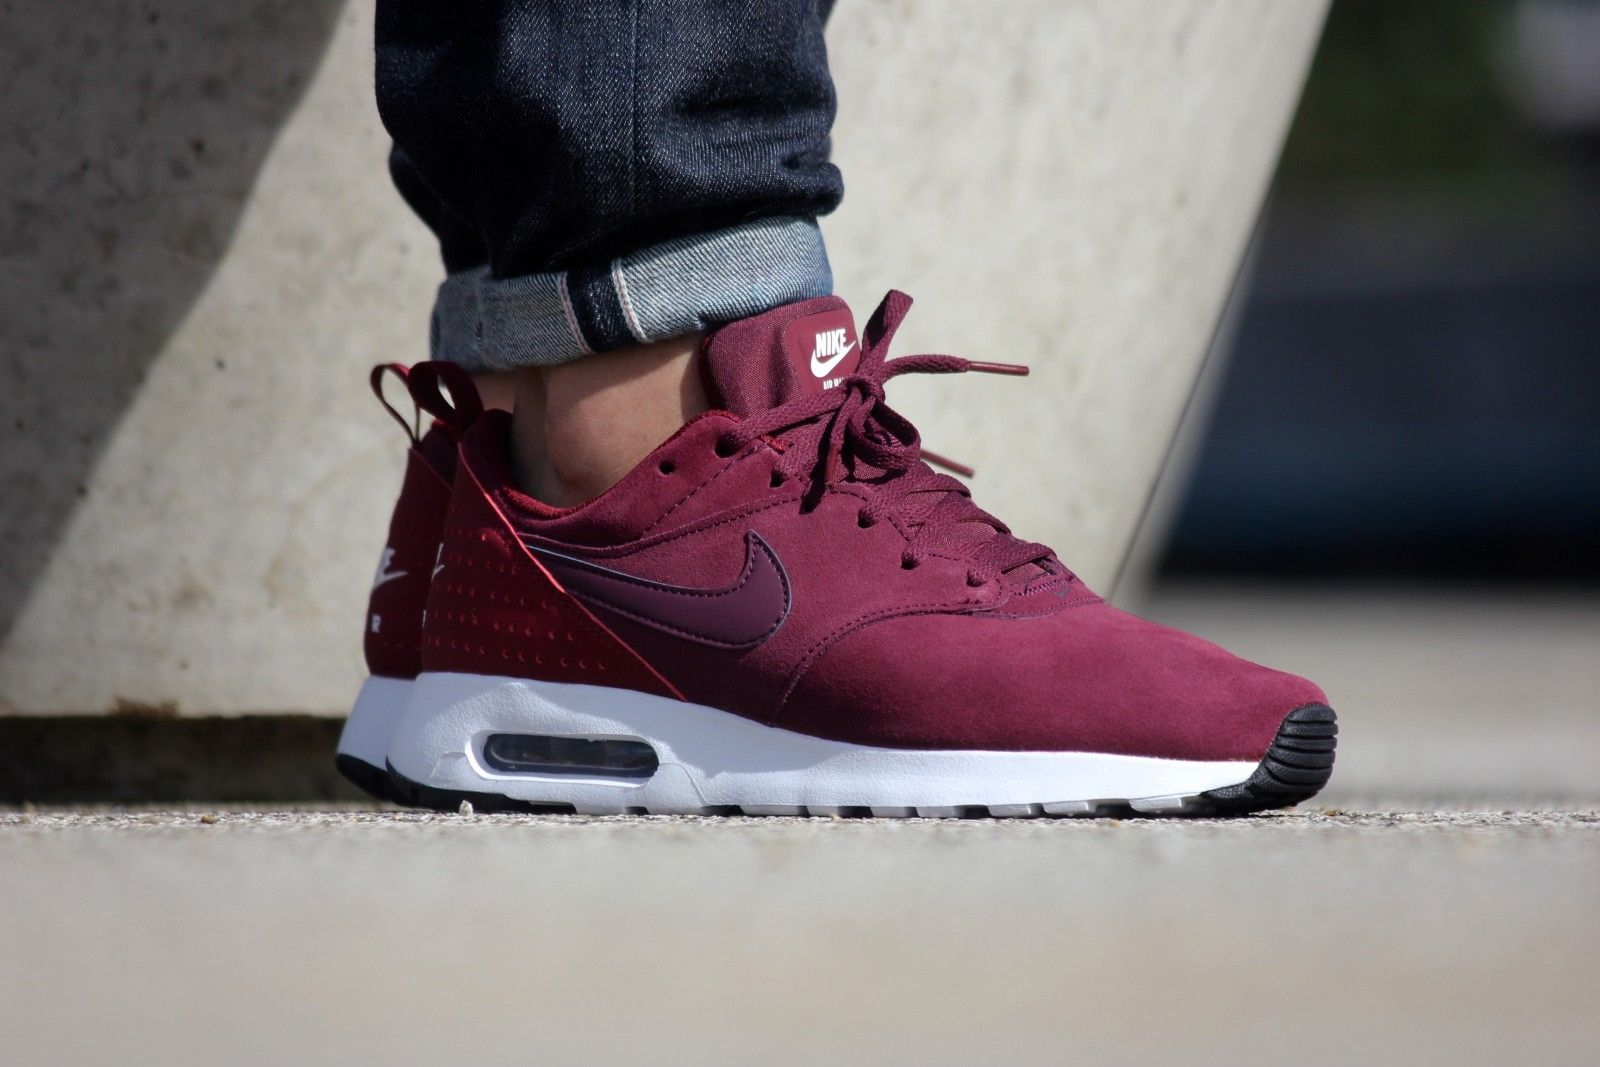 14af2e54796 Nike Air Max Tavas LTR Night Maroon Team Red-Sail - 802611-602 ...